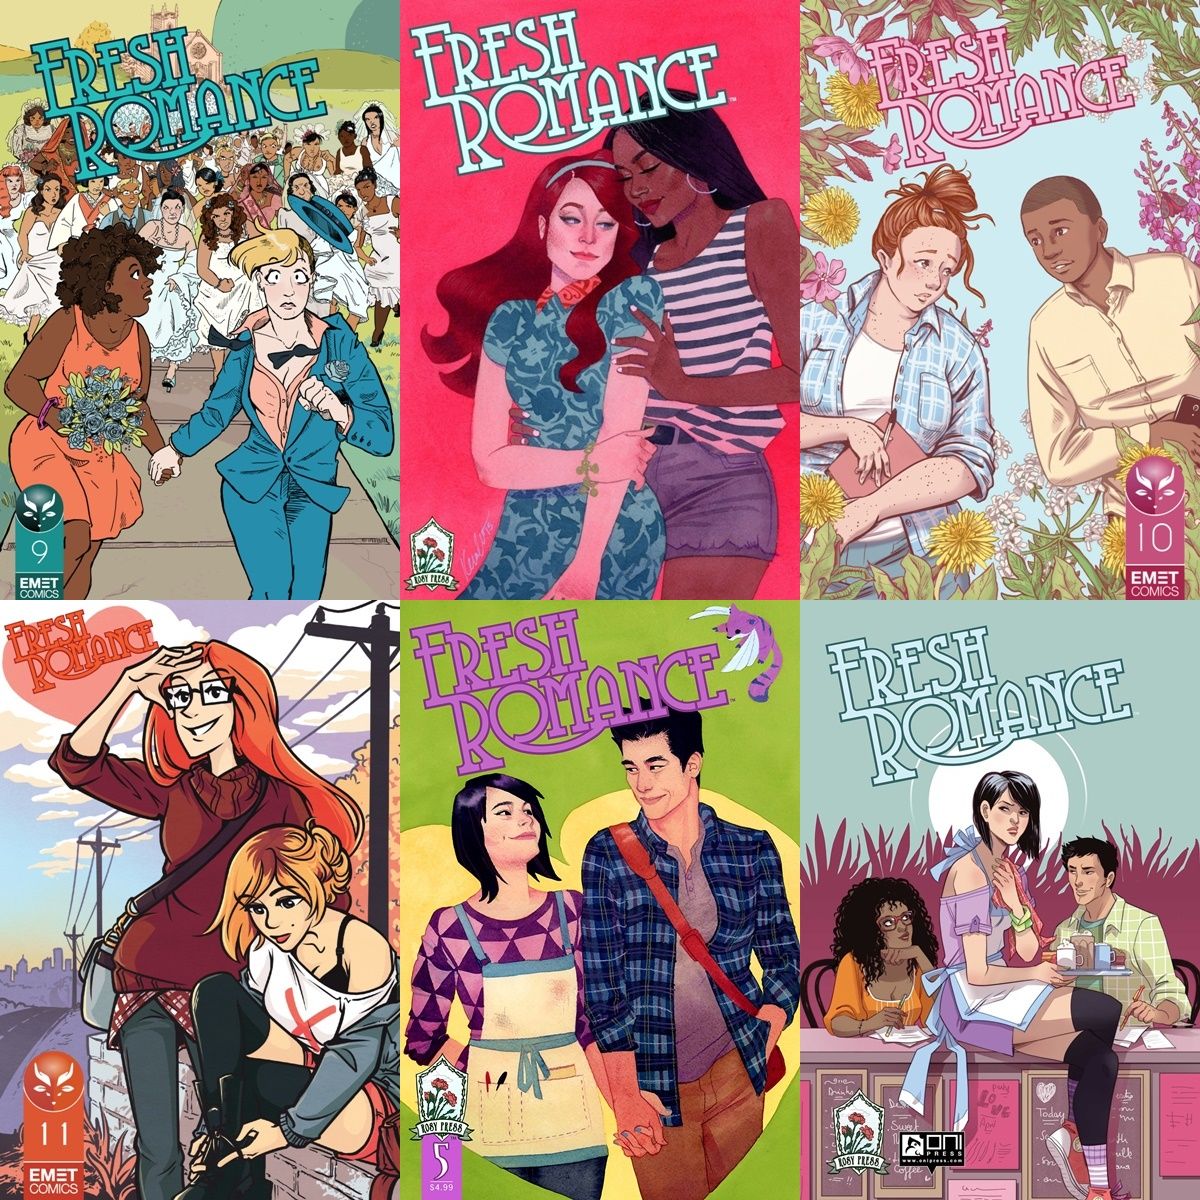 Gorgeous Romance Covers, covers of fresh romance, books